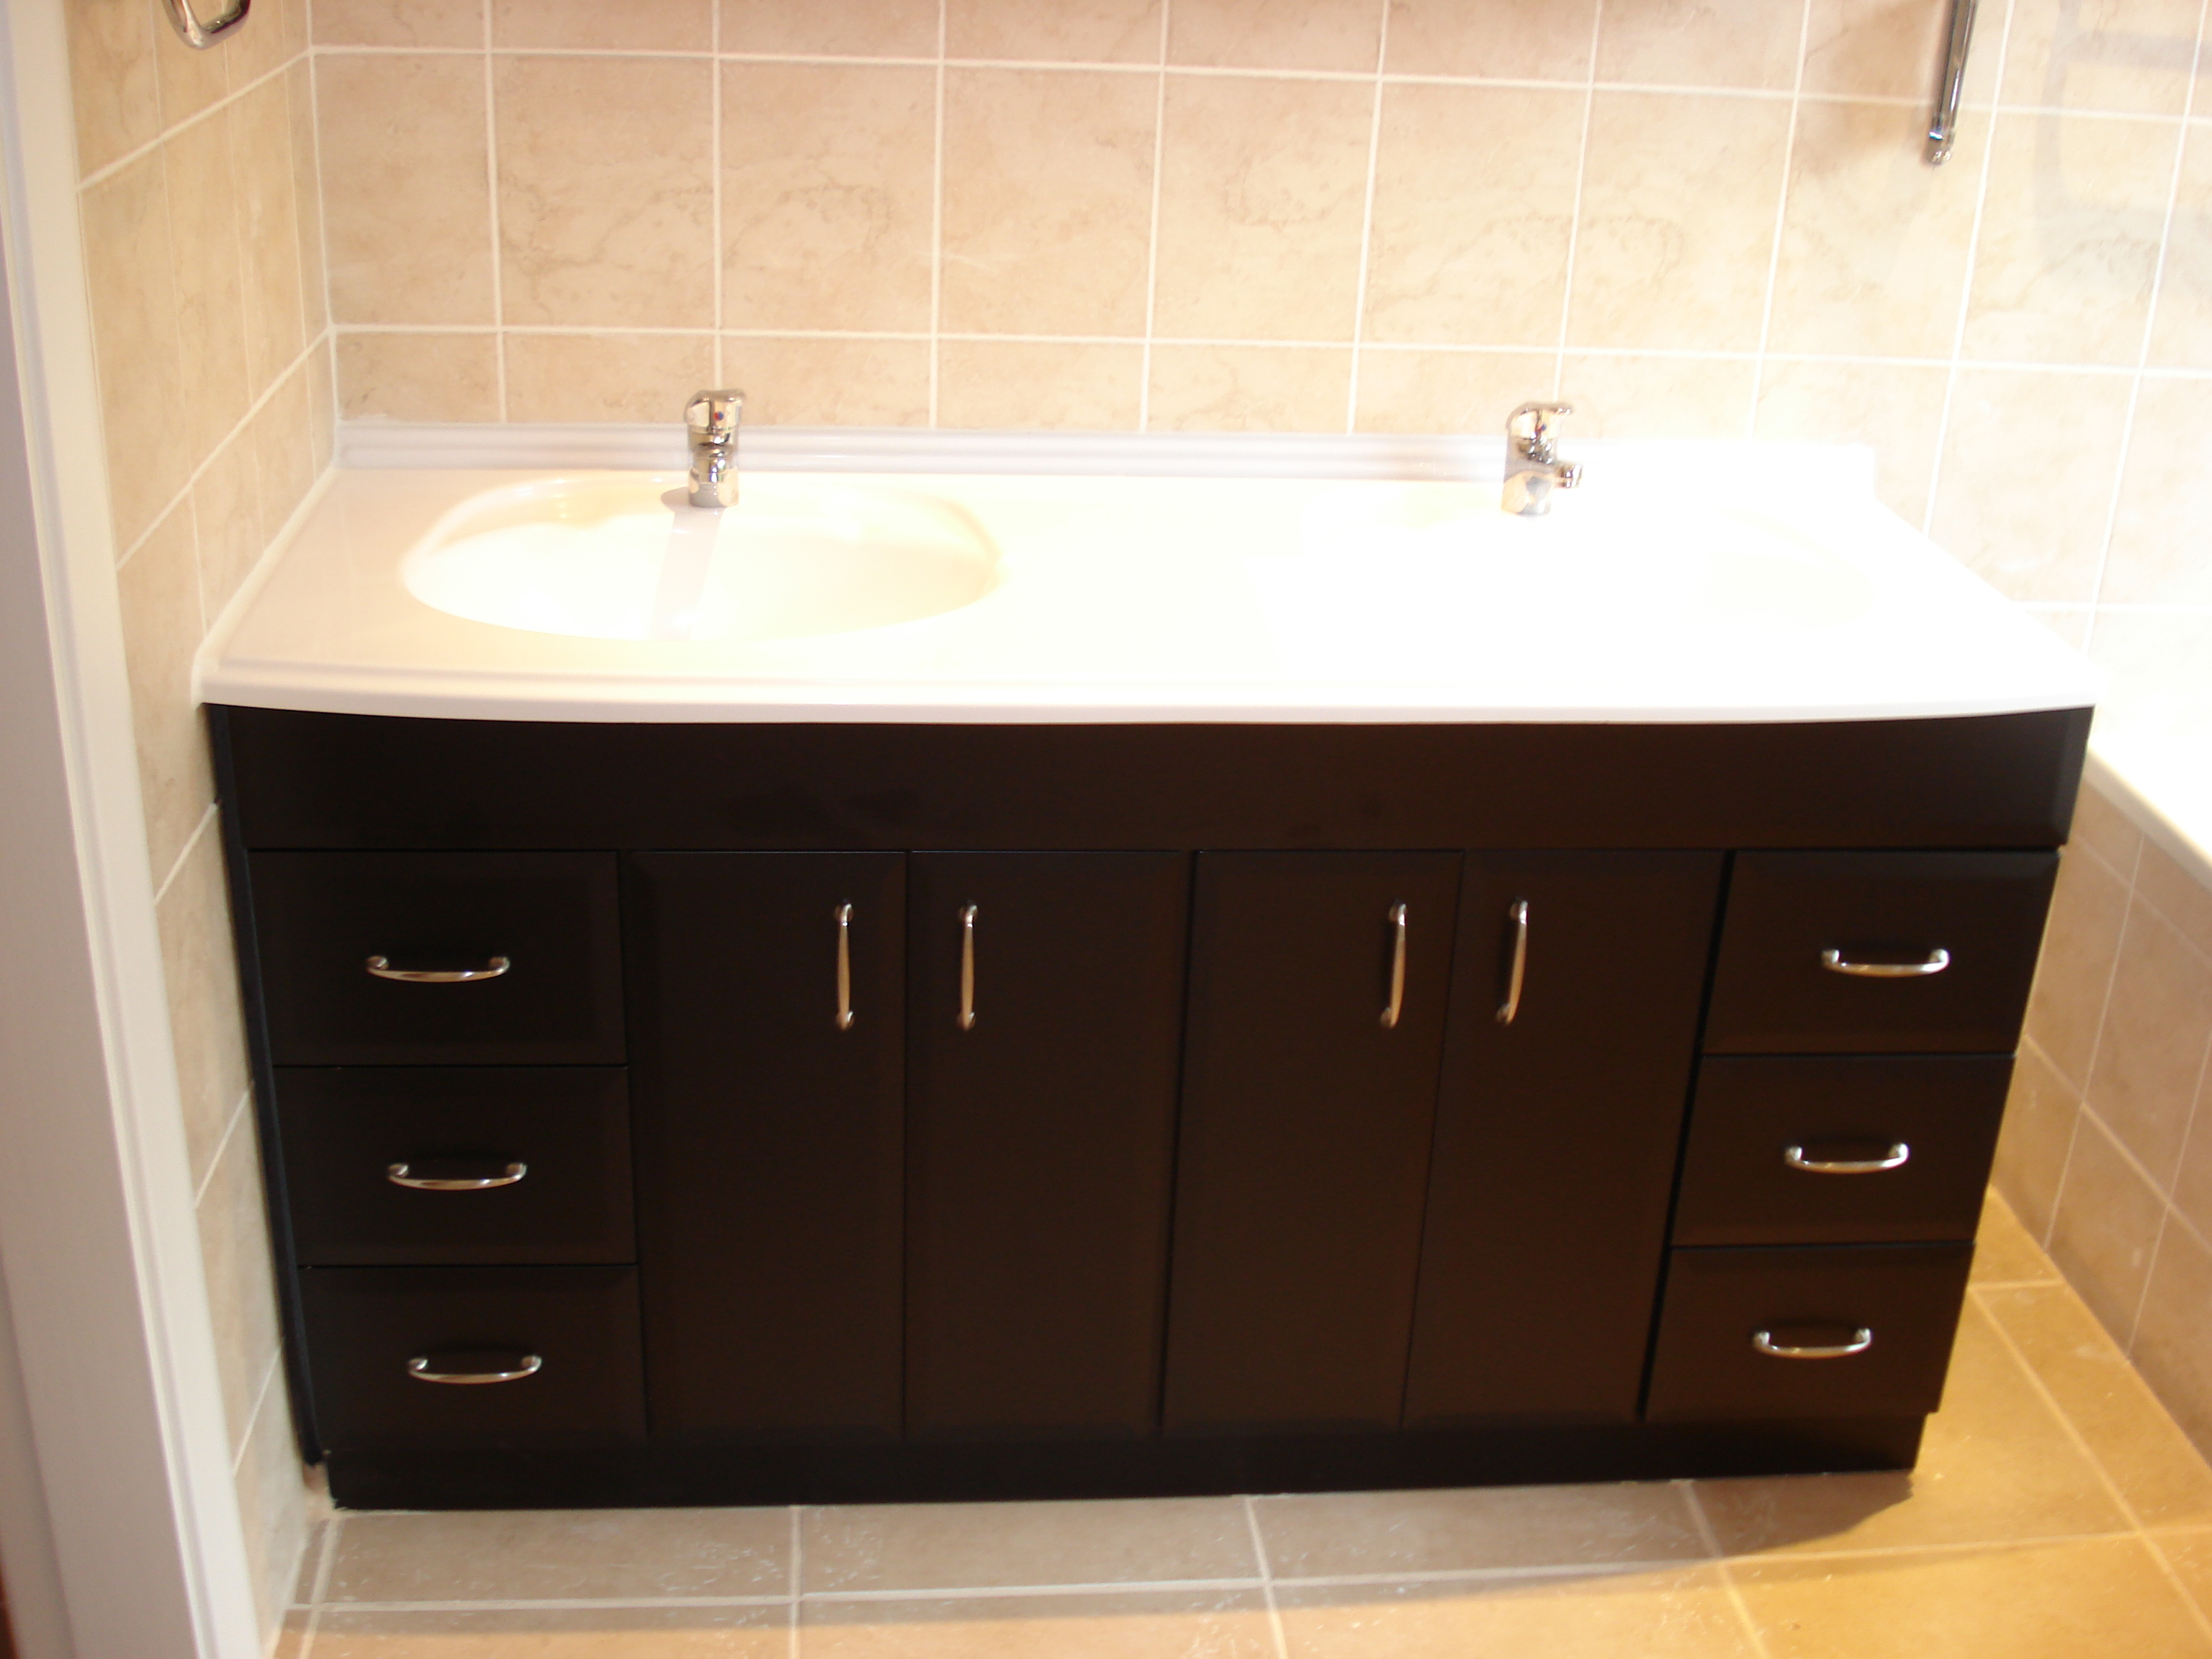 Kitchen cabinets bathroom vanities tv units - Bathroom cabinets sinks and vanities ...